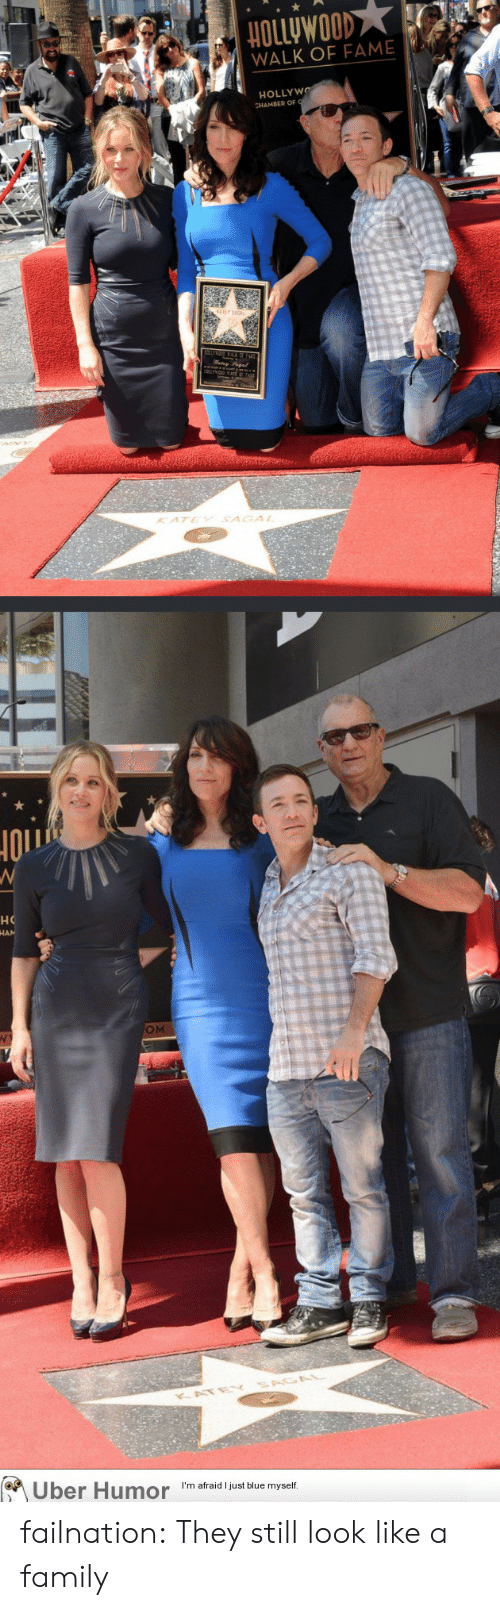 im afraid: HOLLyWOOD  WALK OF FAME  HOLLYWO  KATEY SAGAL  но  OM  KATE  Uber Humor  I'm afraid I just blue myself. failnation:  They still look like a family